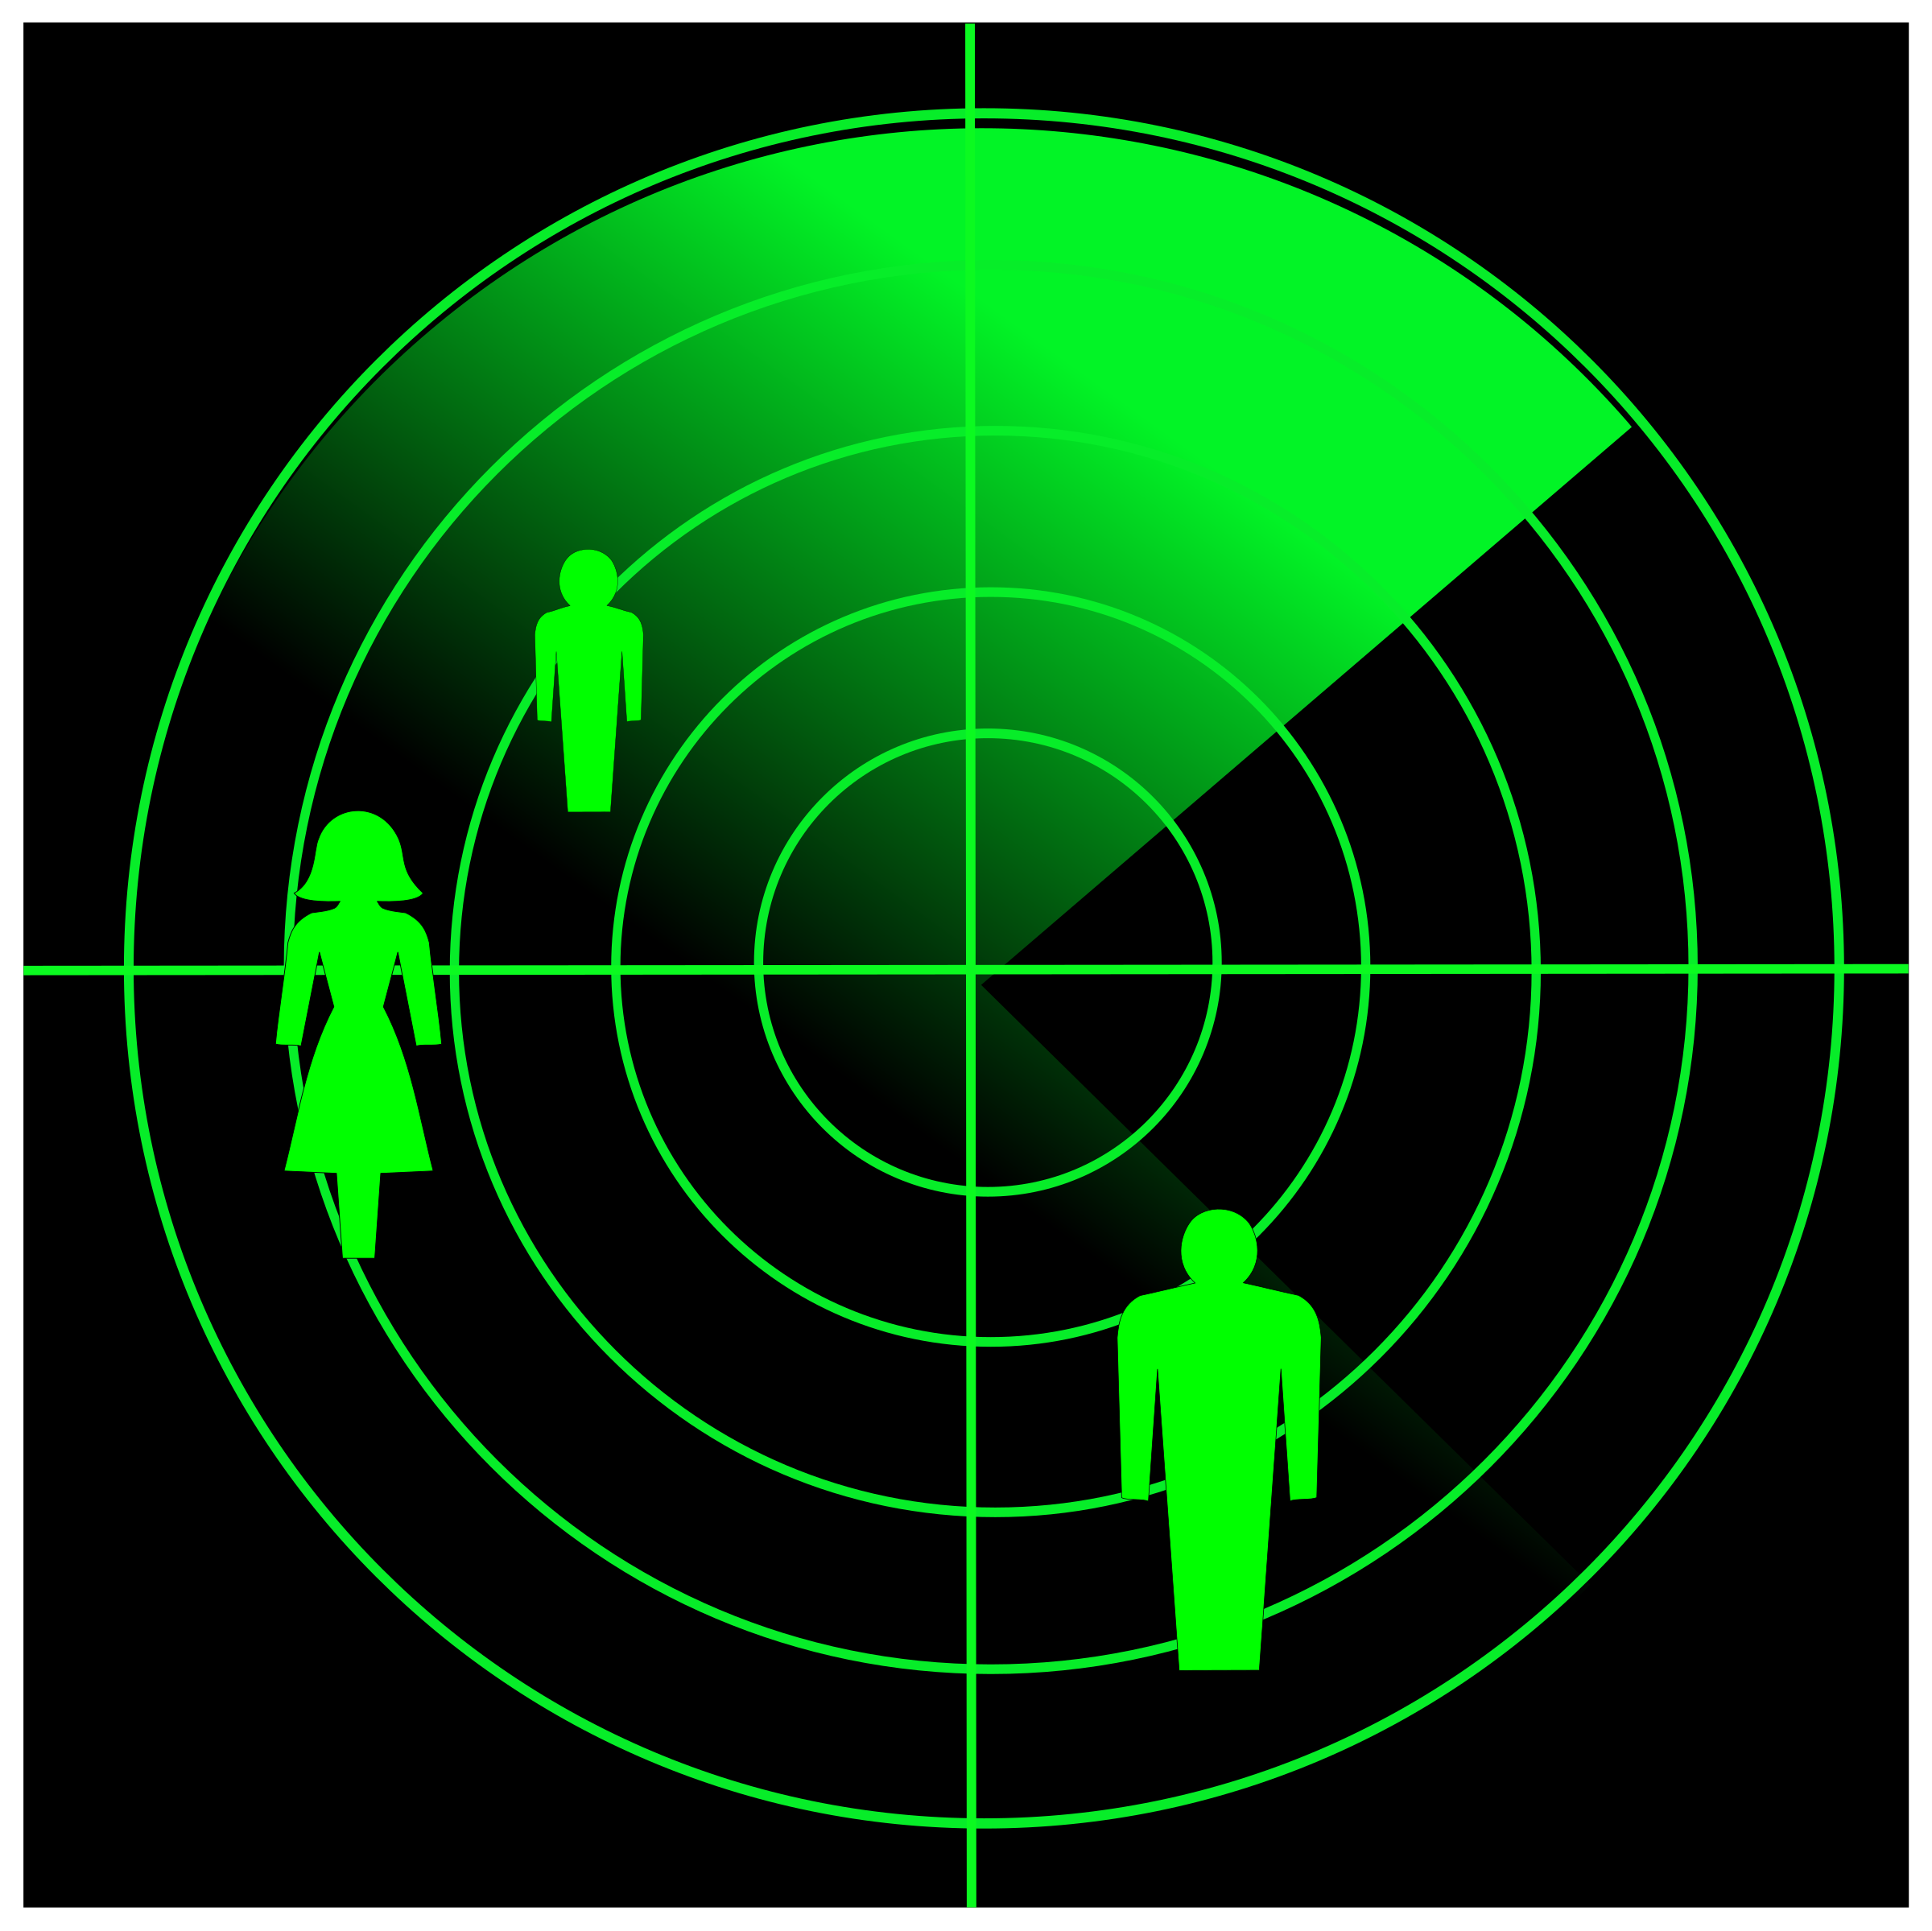 People radar vector clipart image.